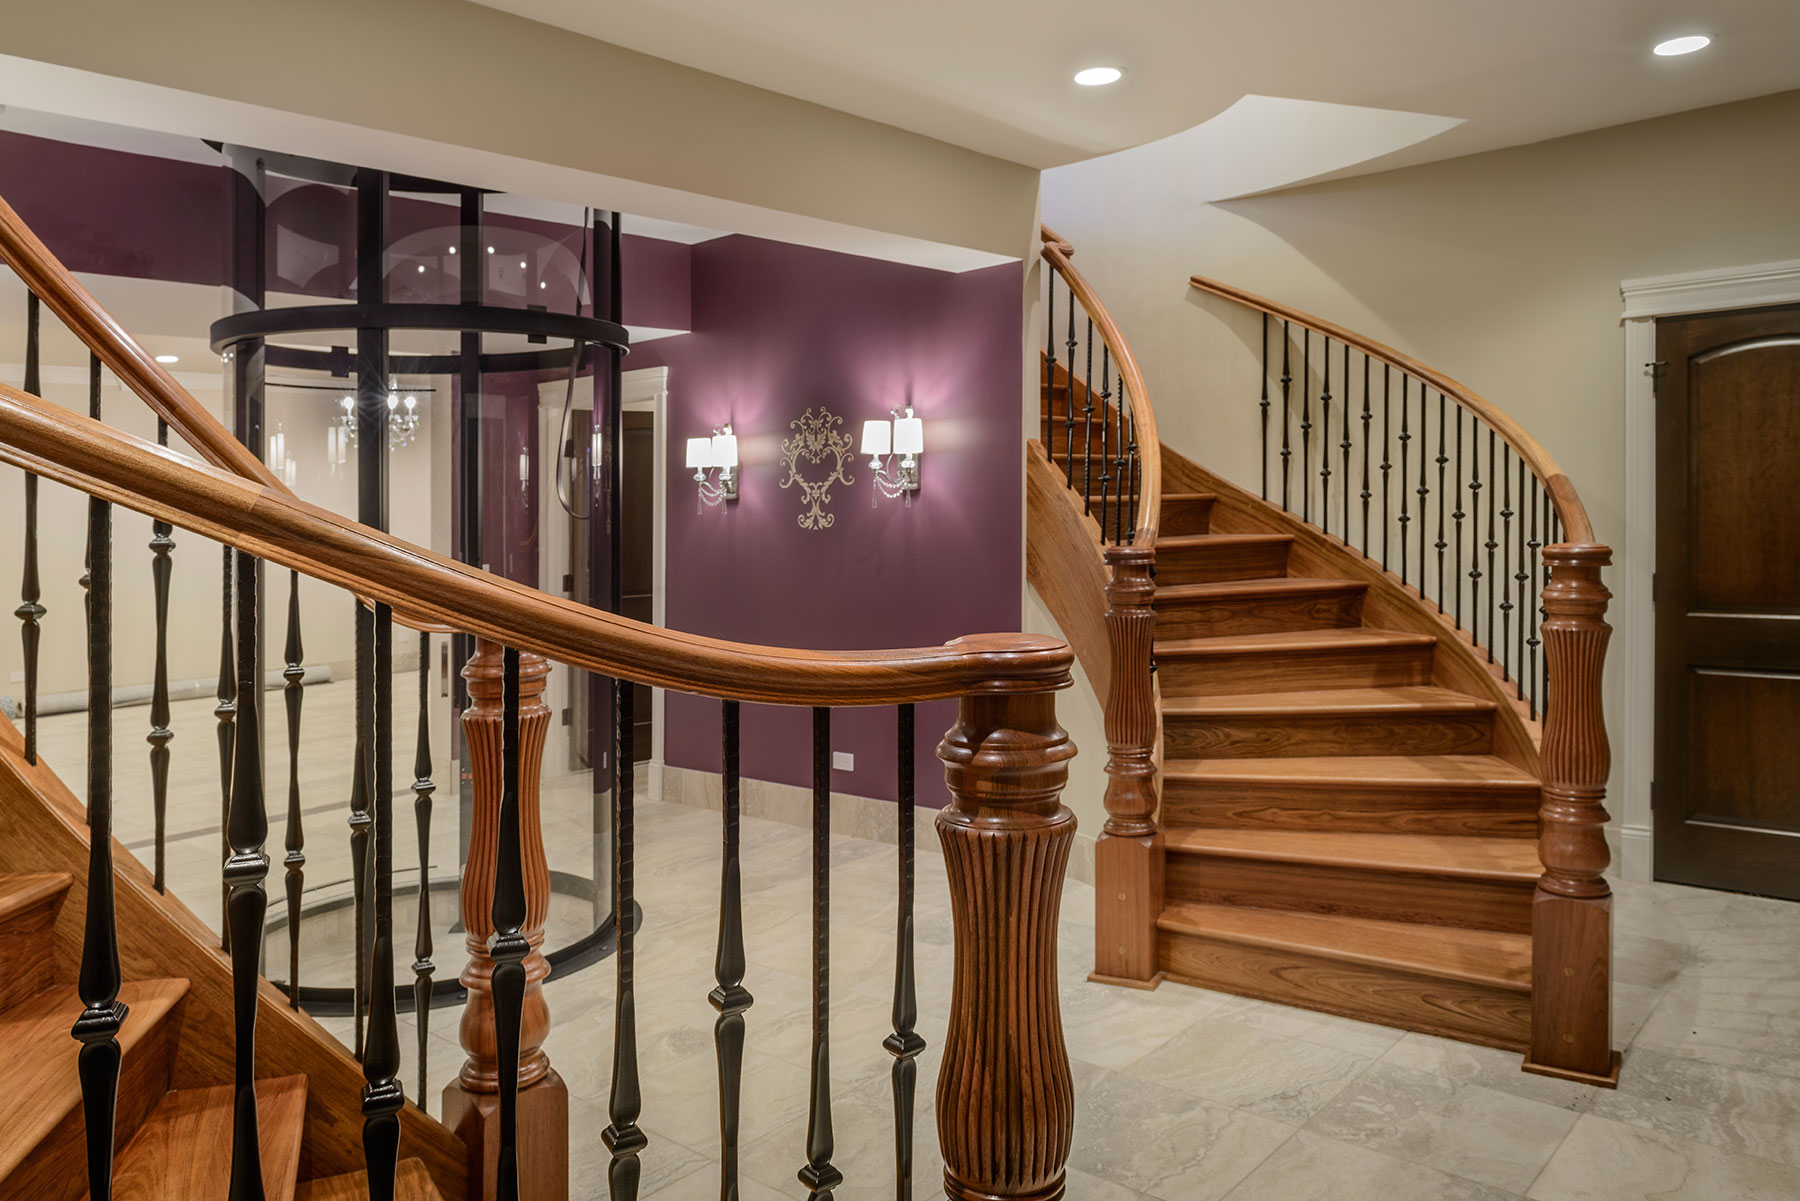 Second Floor, Elevator - Mango Ave., Morton Grove, IL Custom Home. America's Custom Home Builders: New Construction, Remodeling, Restoration Services. Residential and Commercial.